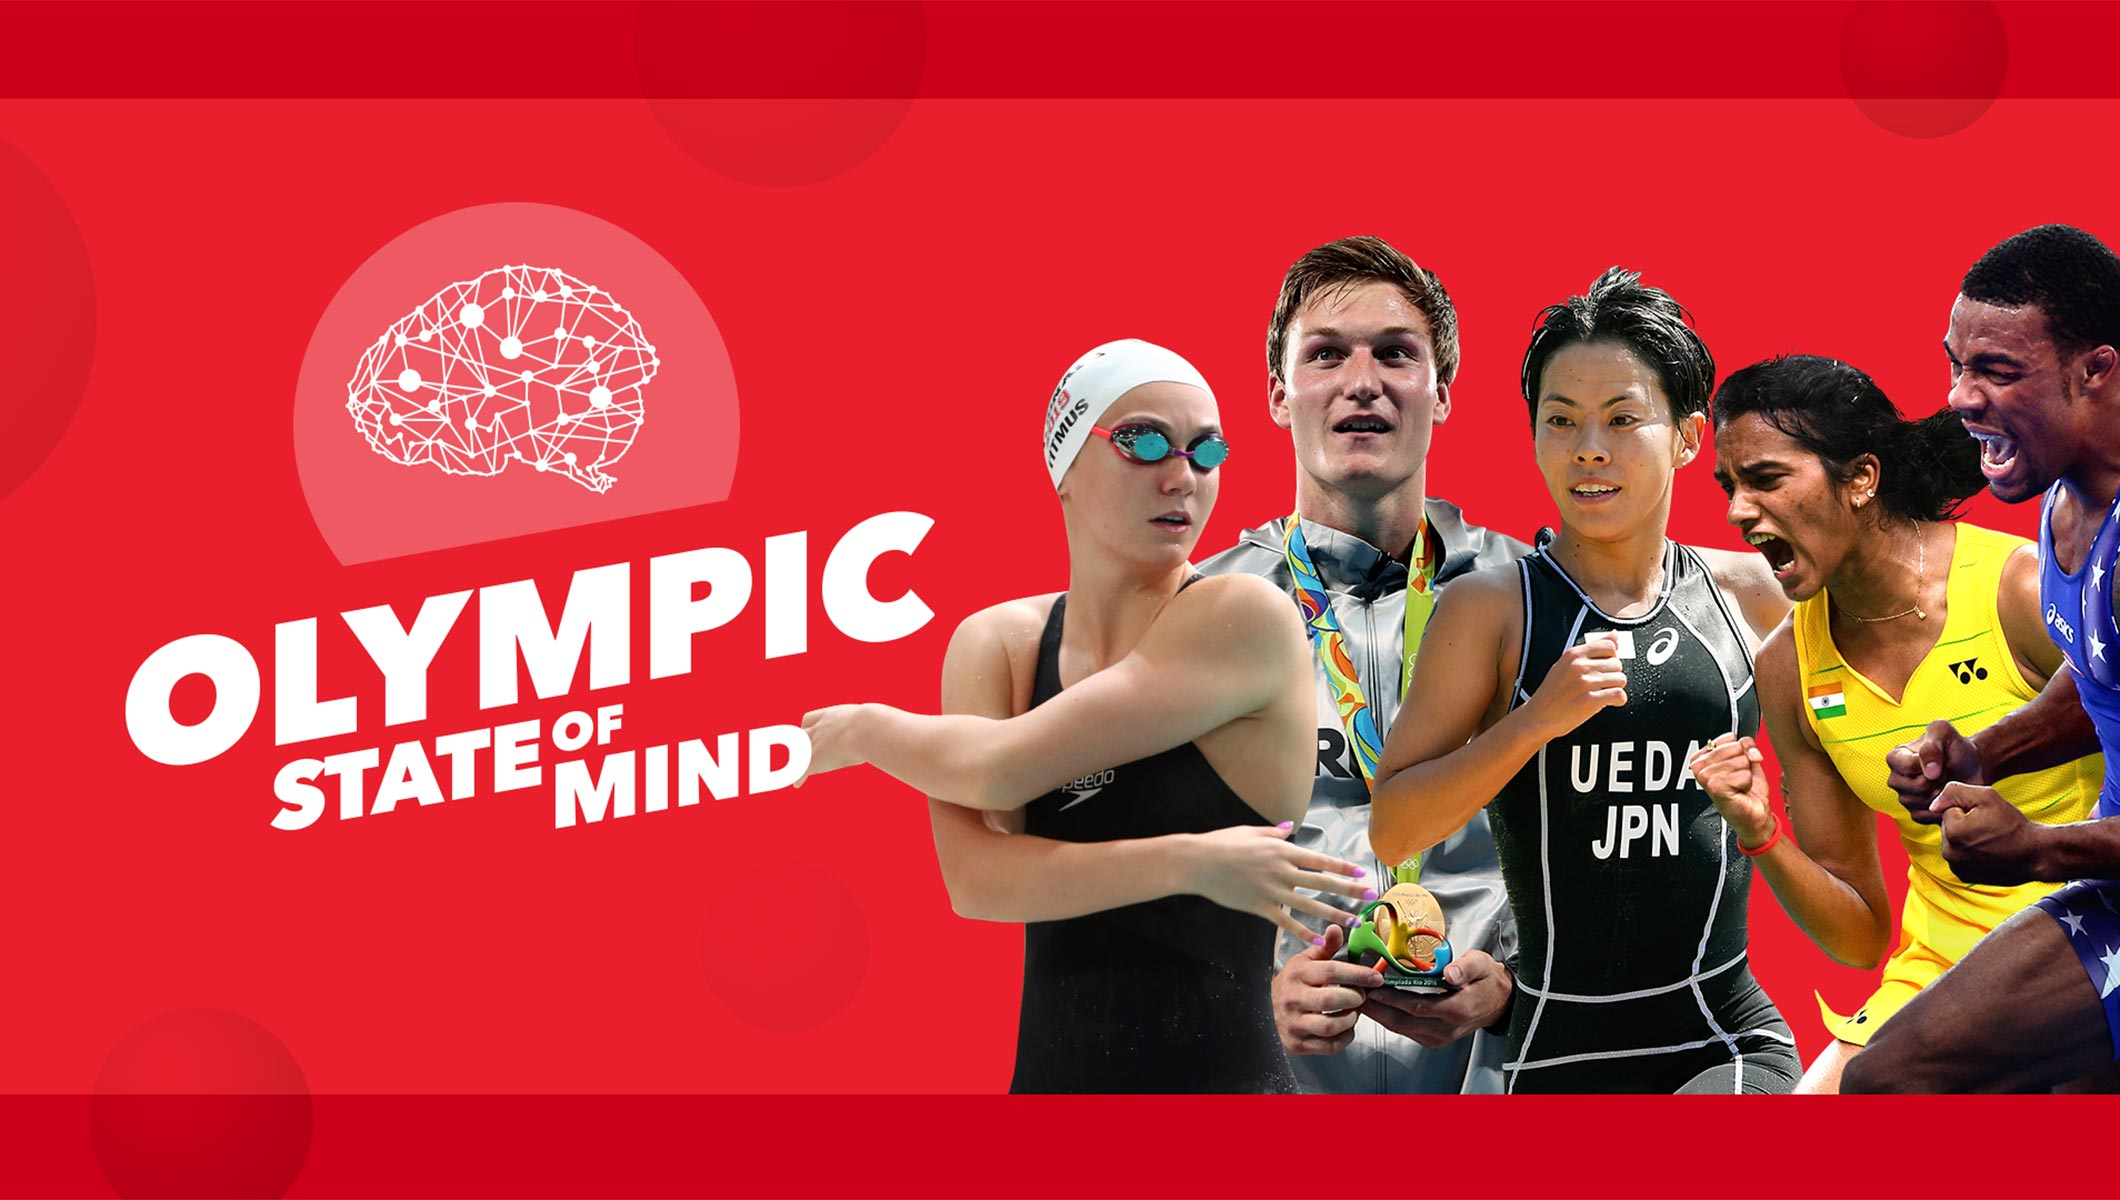 Road to Tokyo 2020: Olympic State of Mind